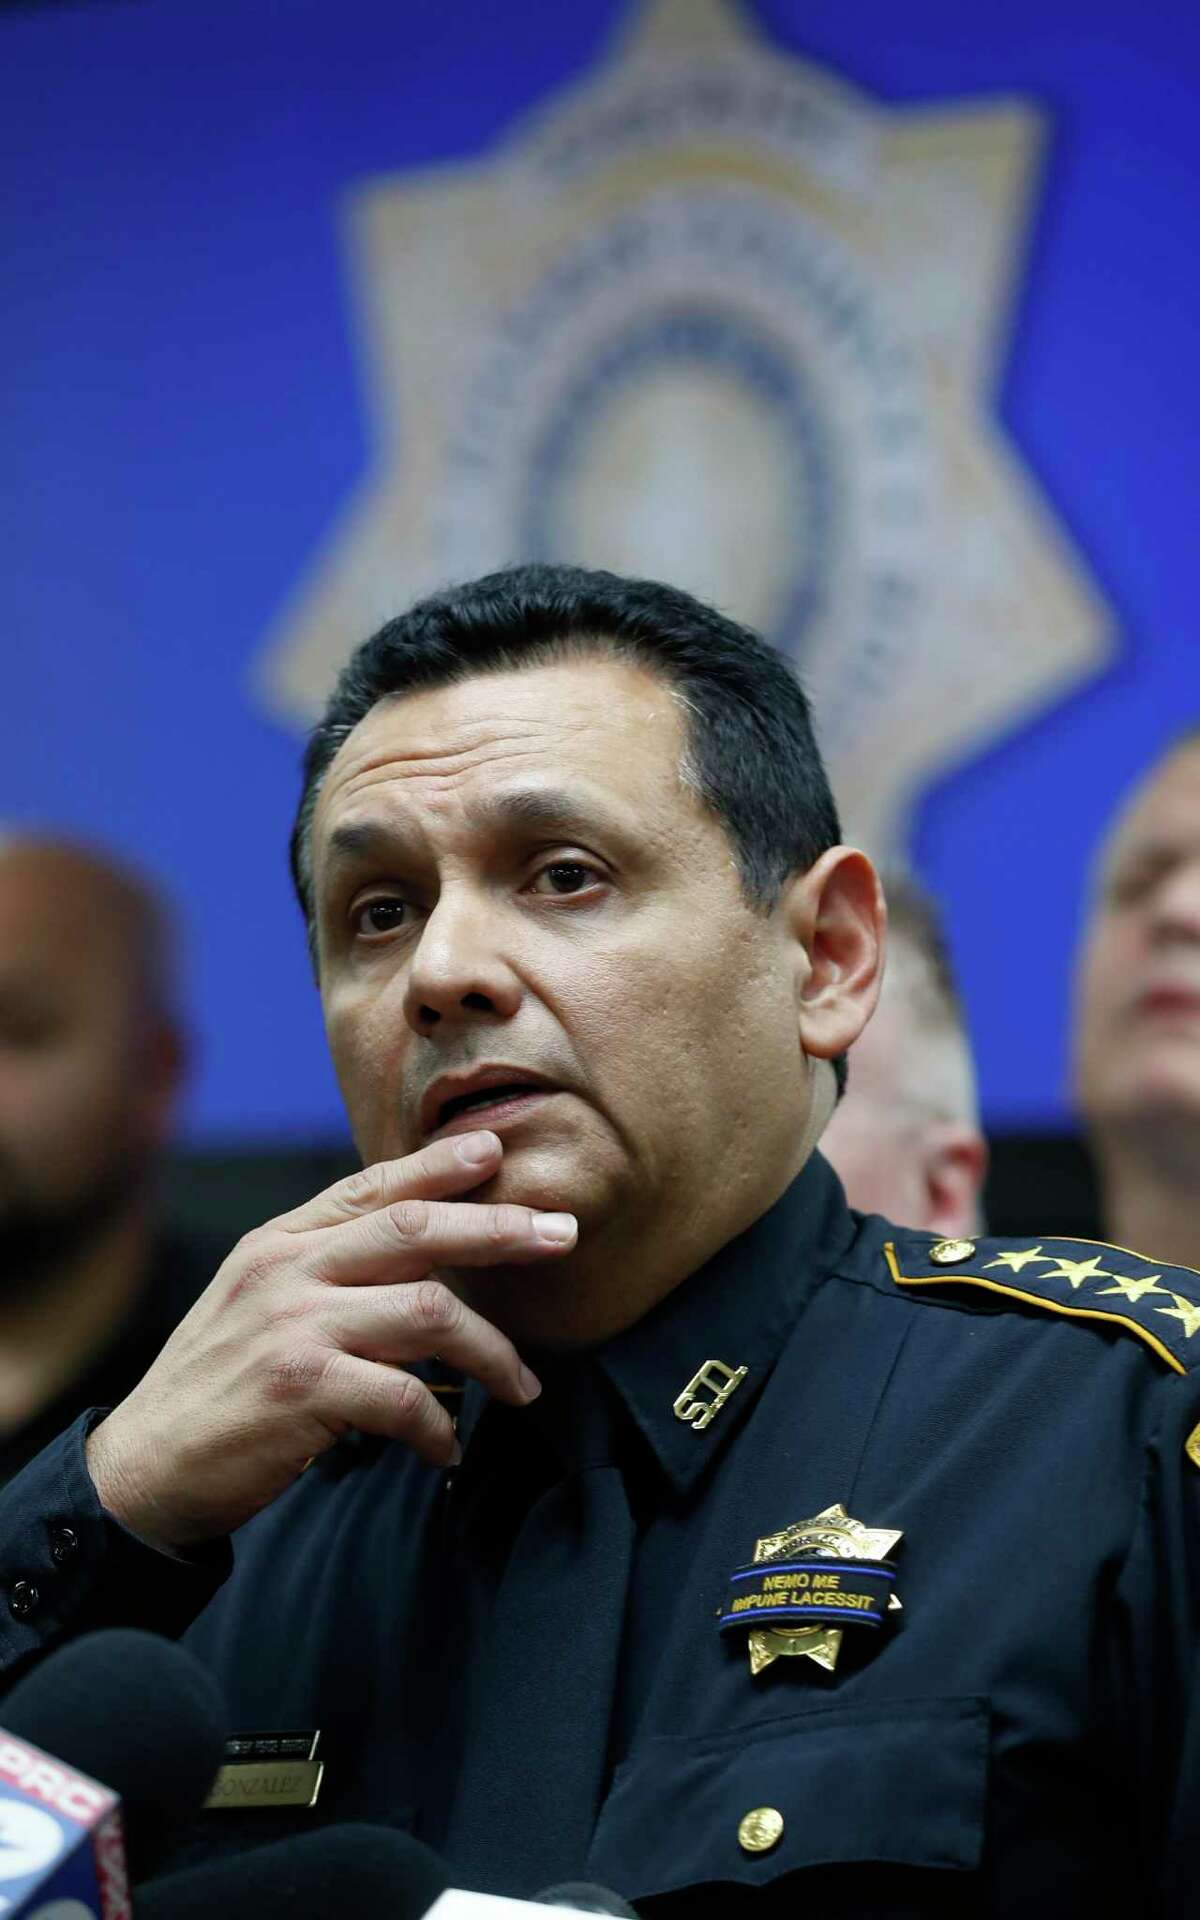 Sheriff Ed Gonzalez has shown he is a reformer who gets results.